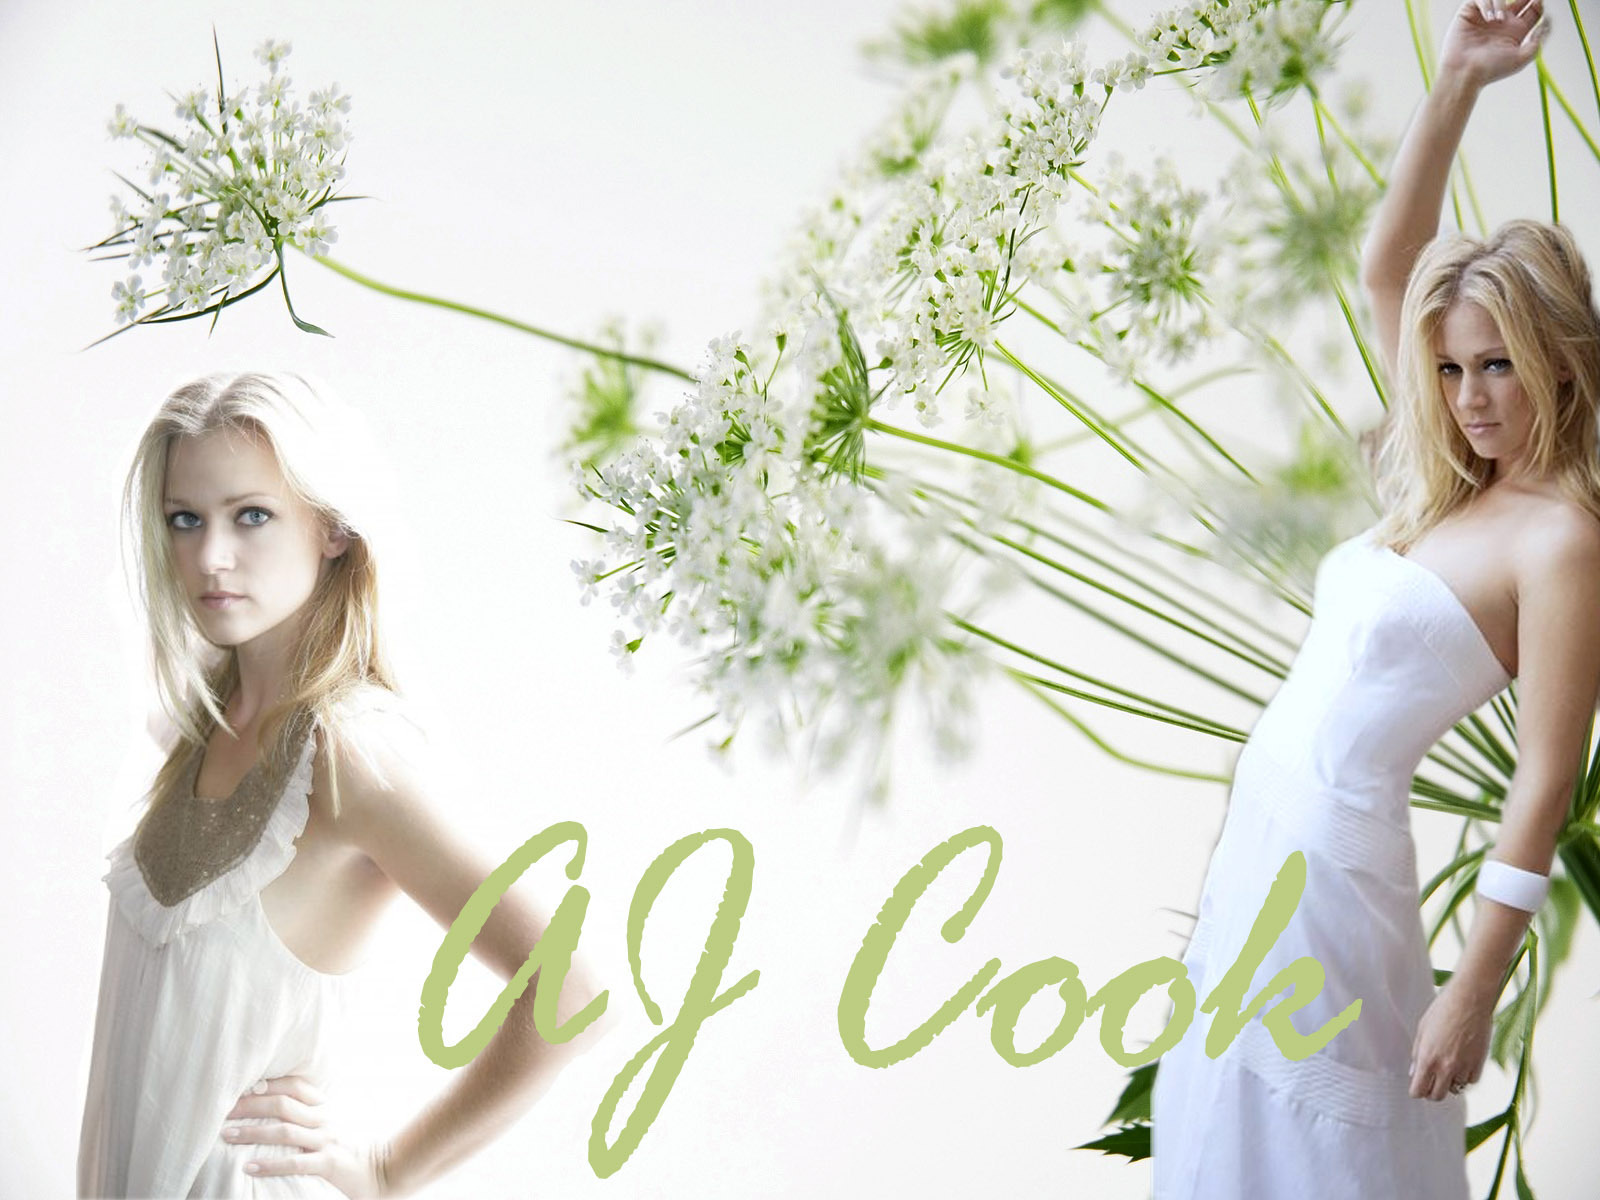 all a j cook - photo #19